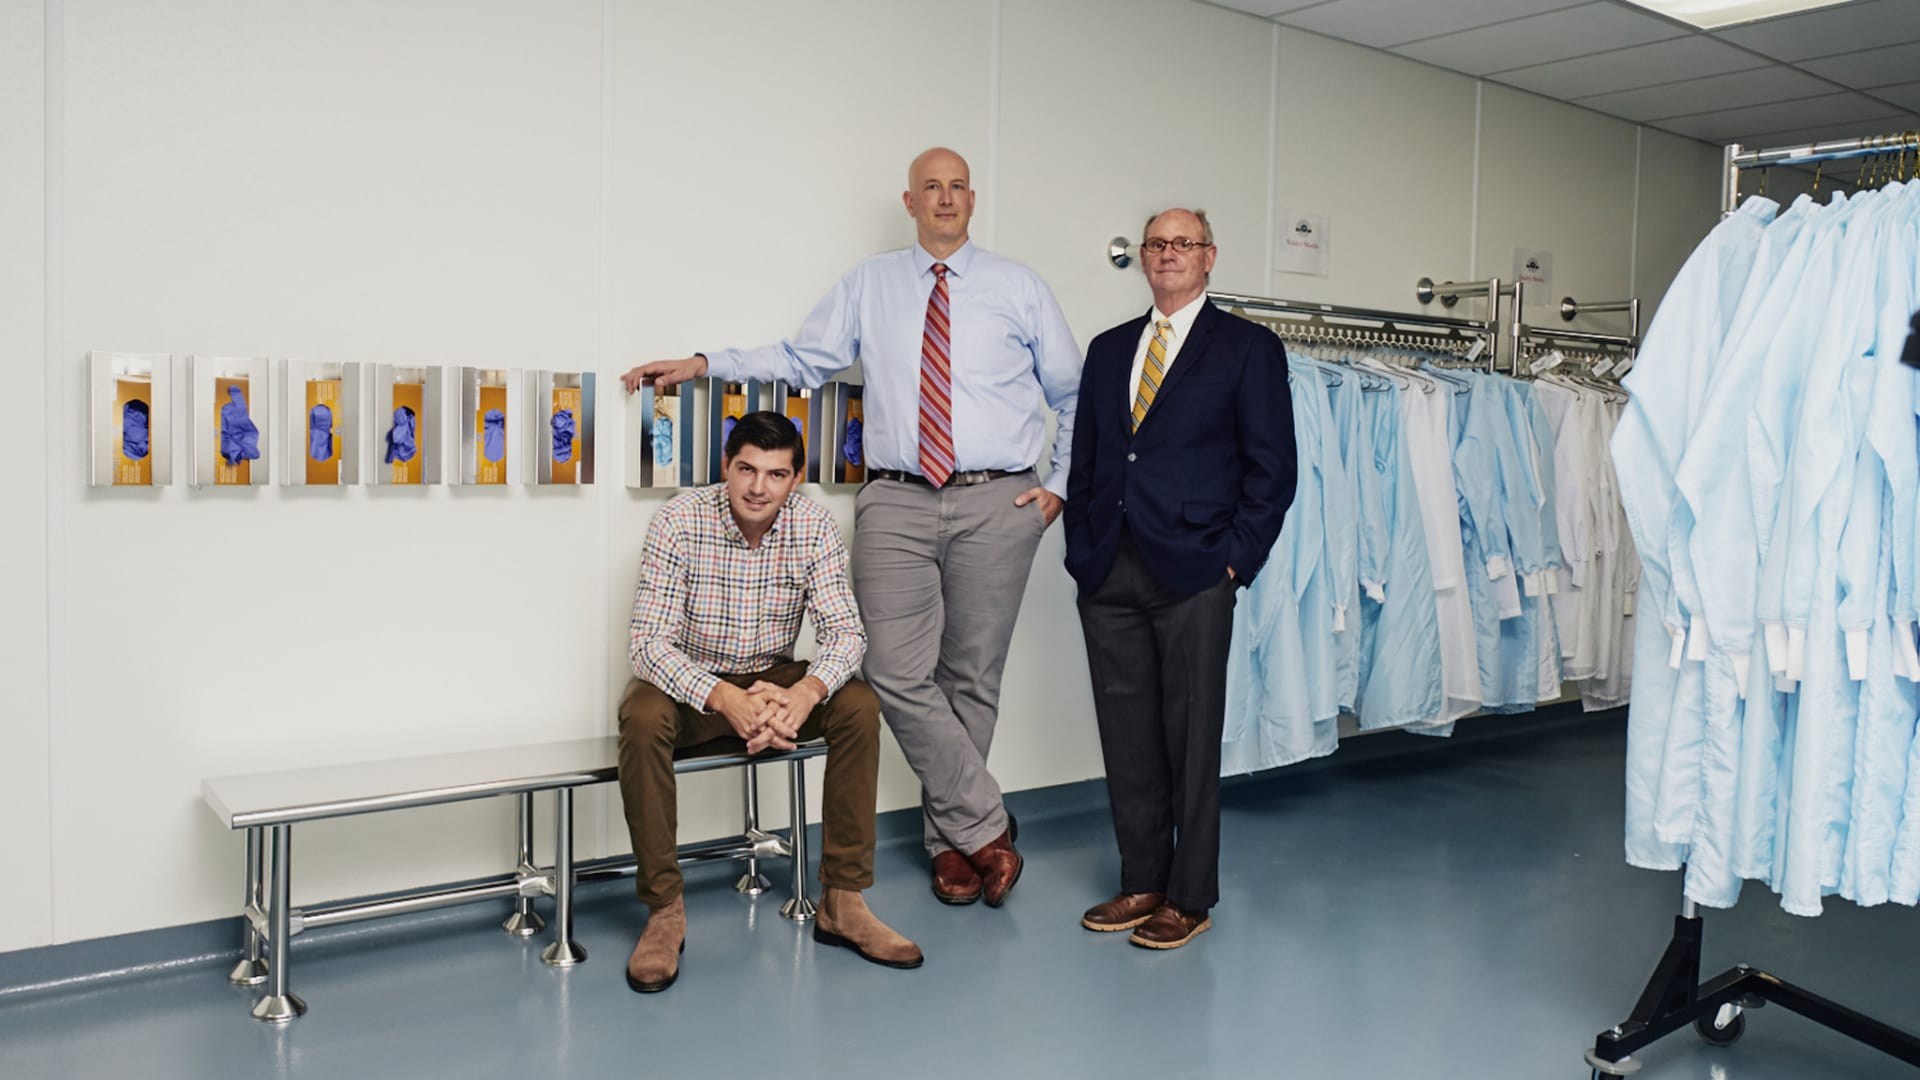 Derek McKenney, senior manufacturing engineer, Scott Wellman, interim general manager, and Timothy Templet, head of global sales, of Puritan Medical Products, Inc.'s Company of the Year.